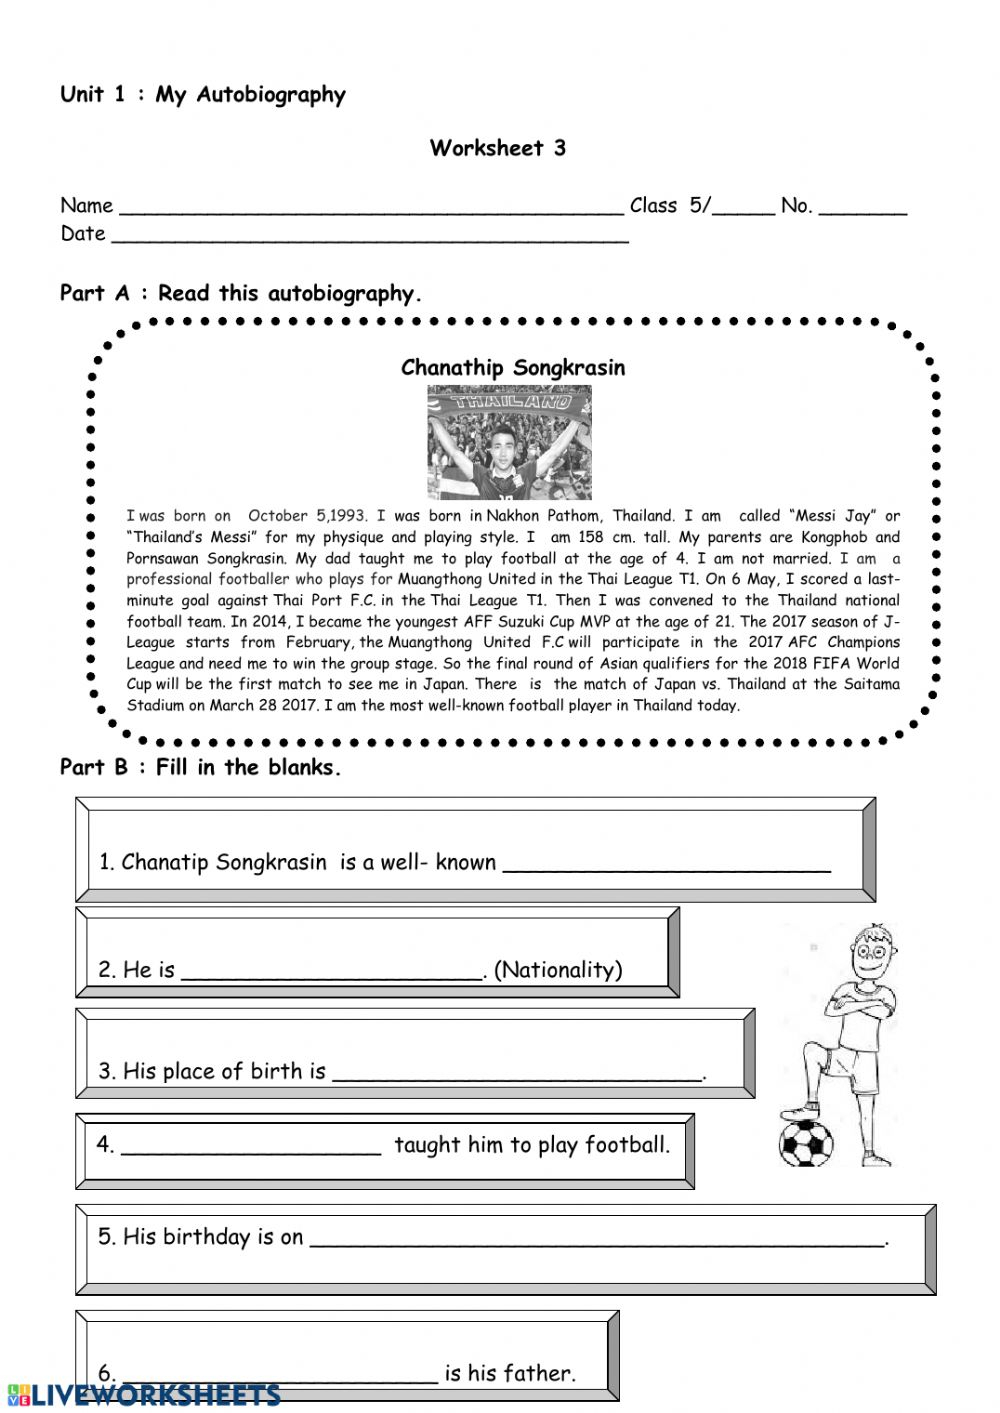 My Autobiography Interactive Worksheet Worksheets For